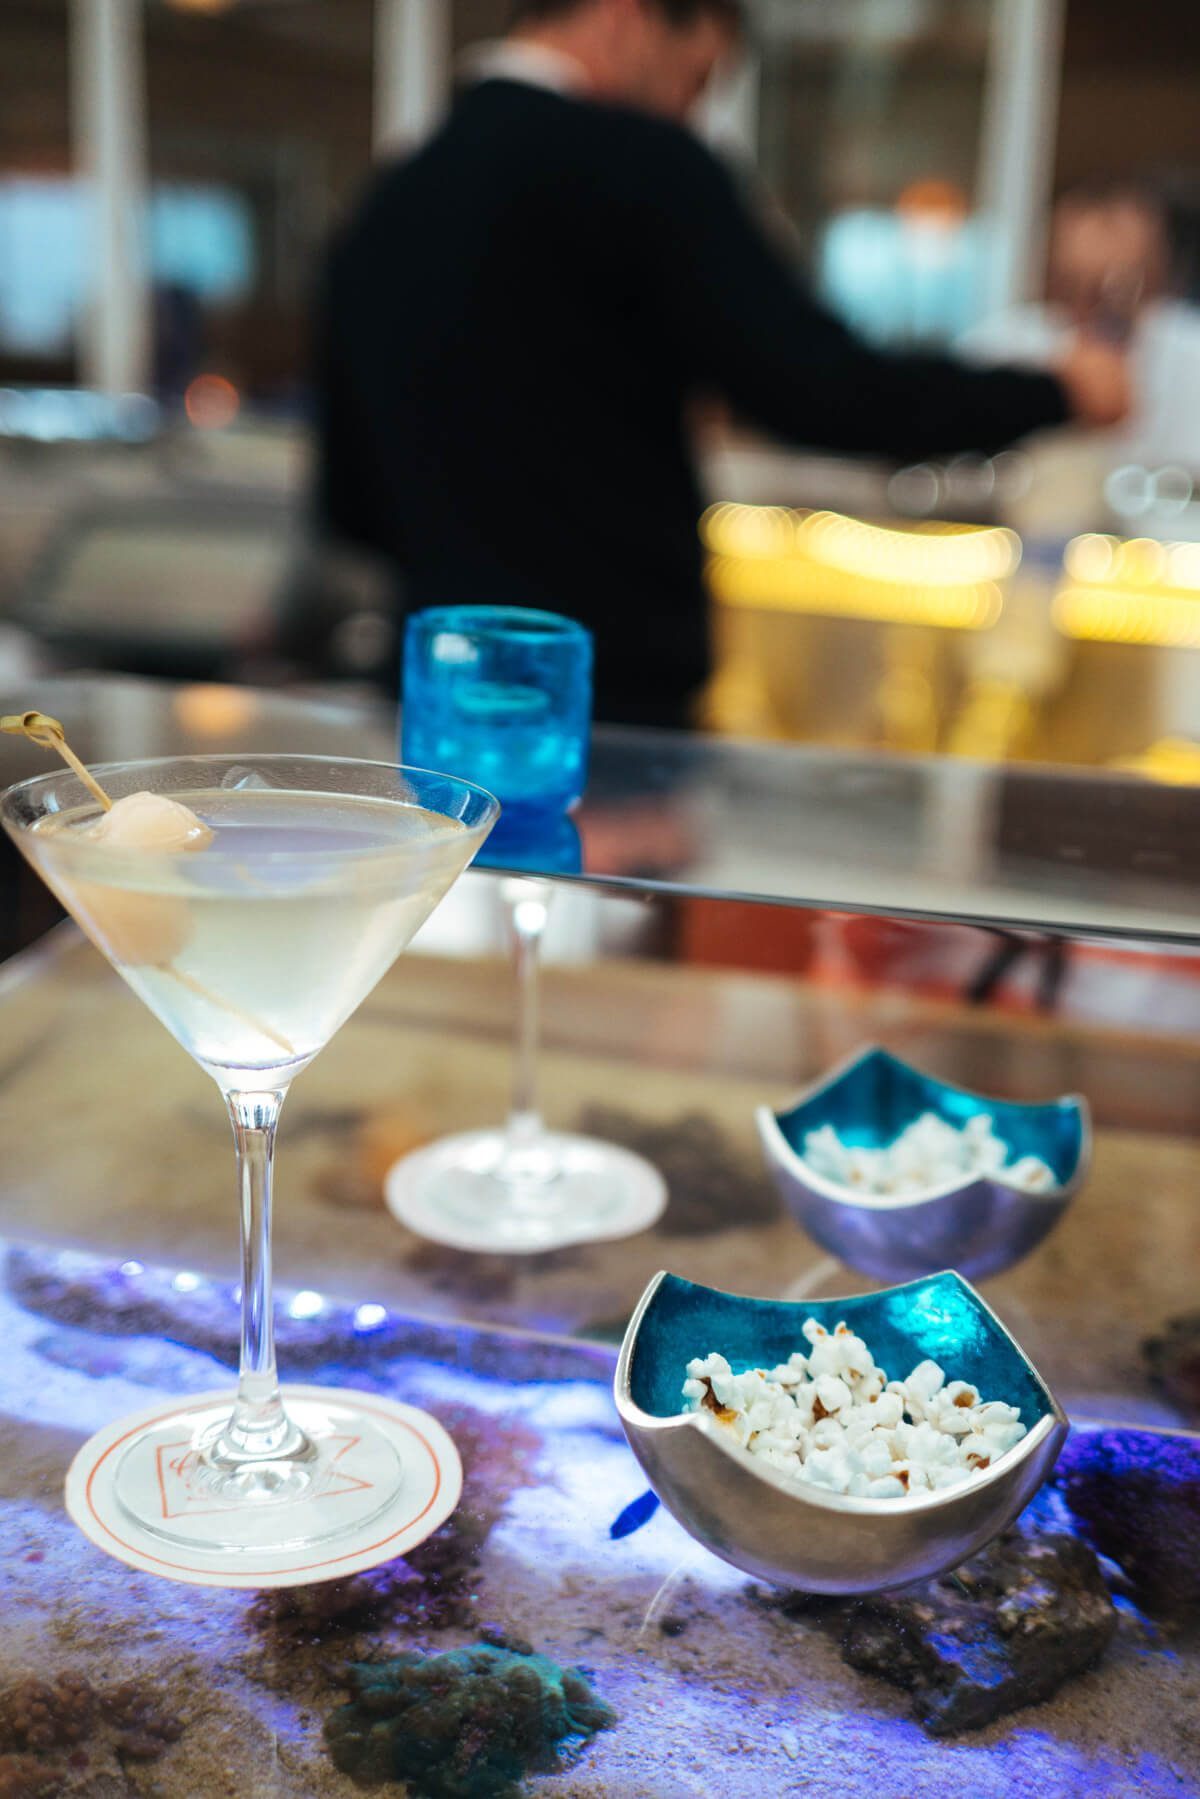 Lychee Martini at The Coral Reef Bar at the Coral Casino Beach and Cabana Club, Four Seasons Biltmore Santa Barbara